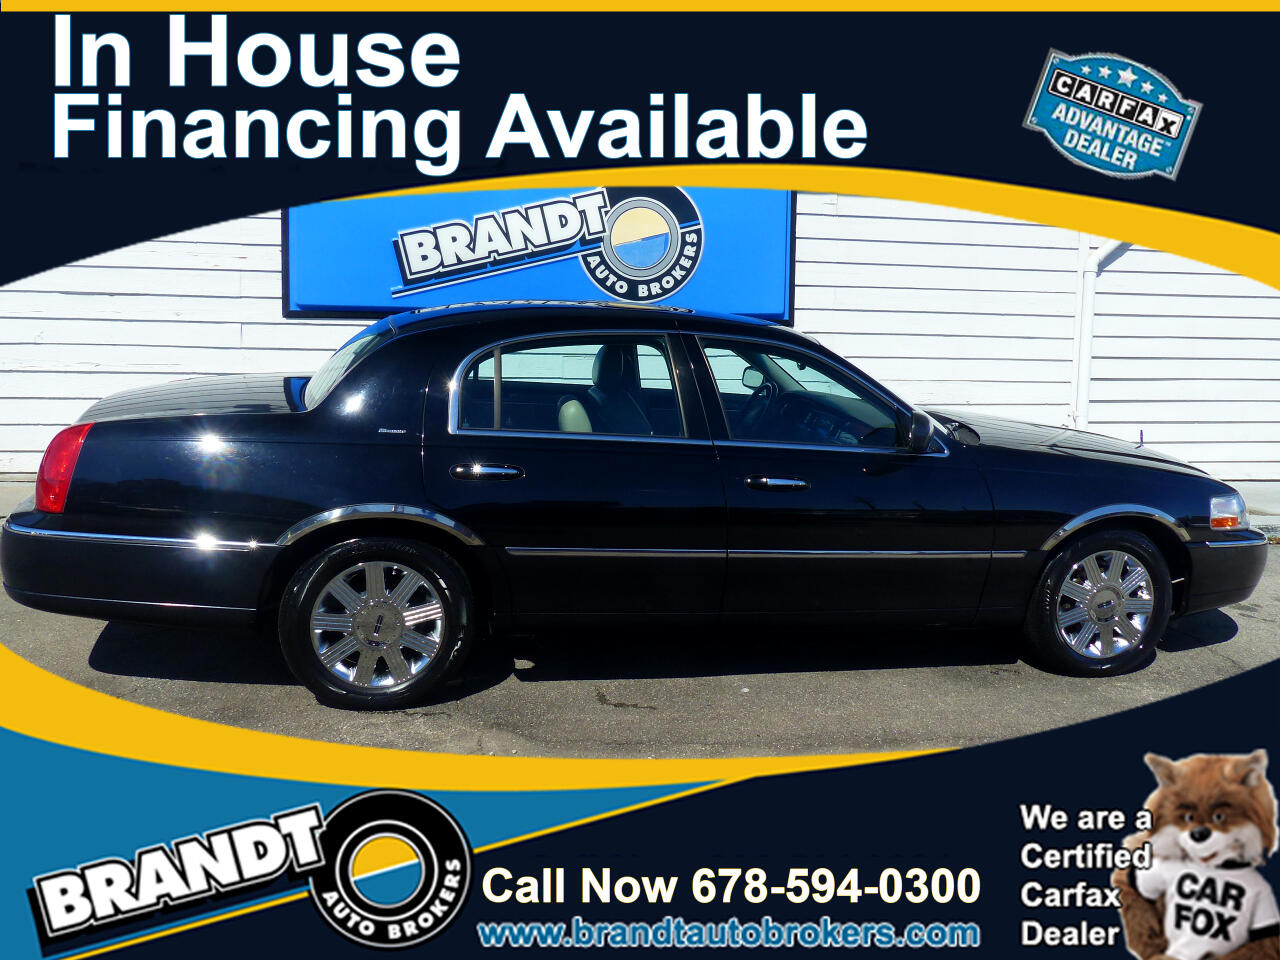 used 2004 lincoln town car ultimate for sale in marietta ga 30062 brandt auto brokers used 2004 lincoln town car ultimate for